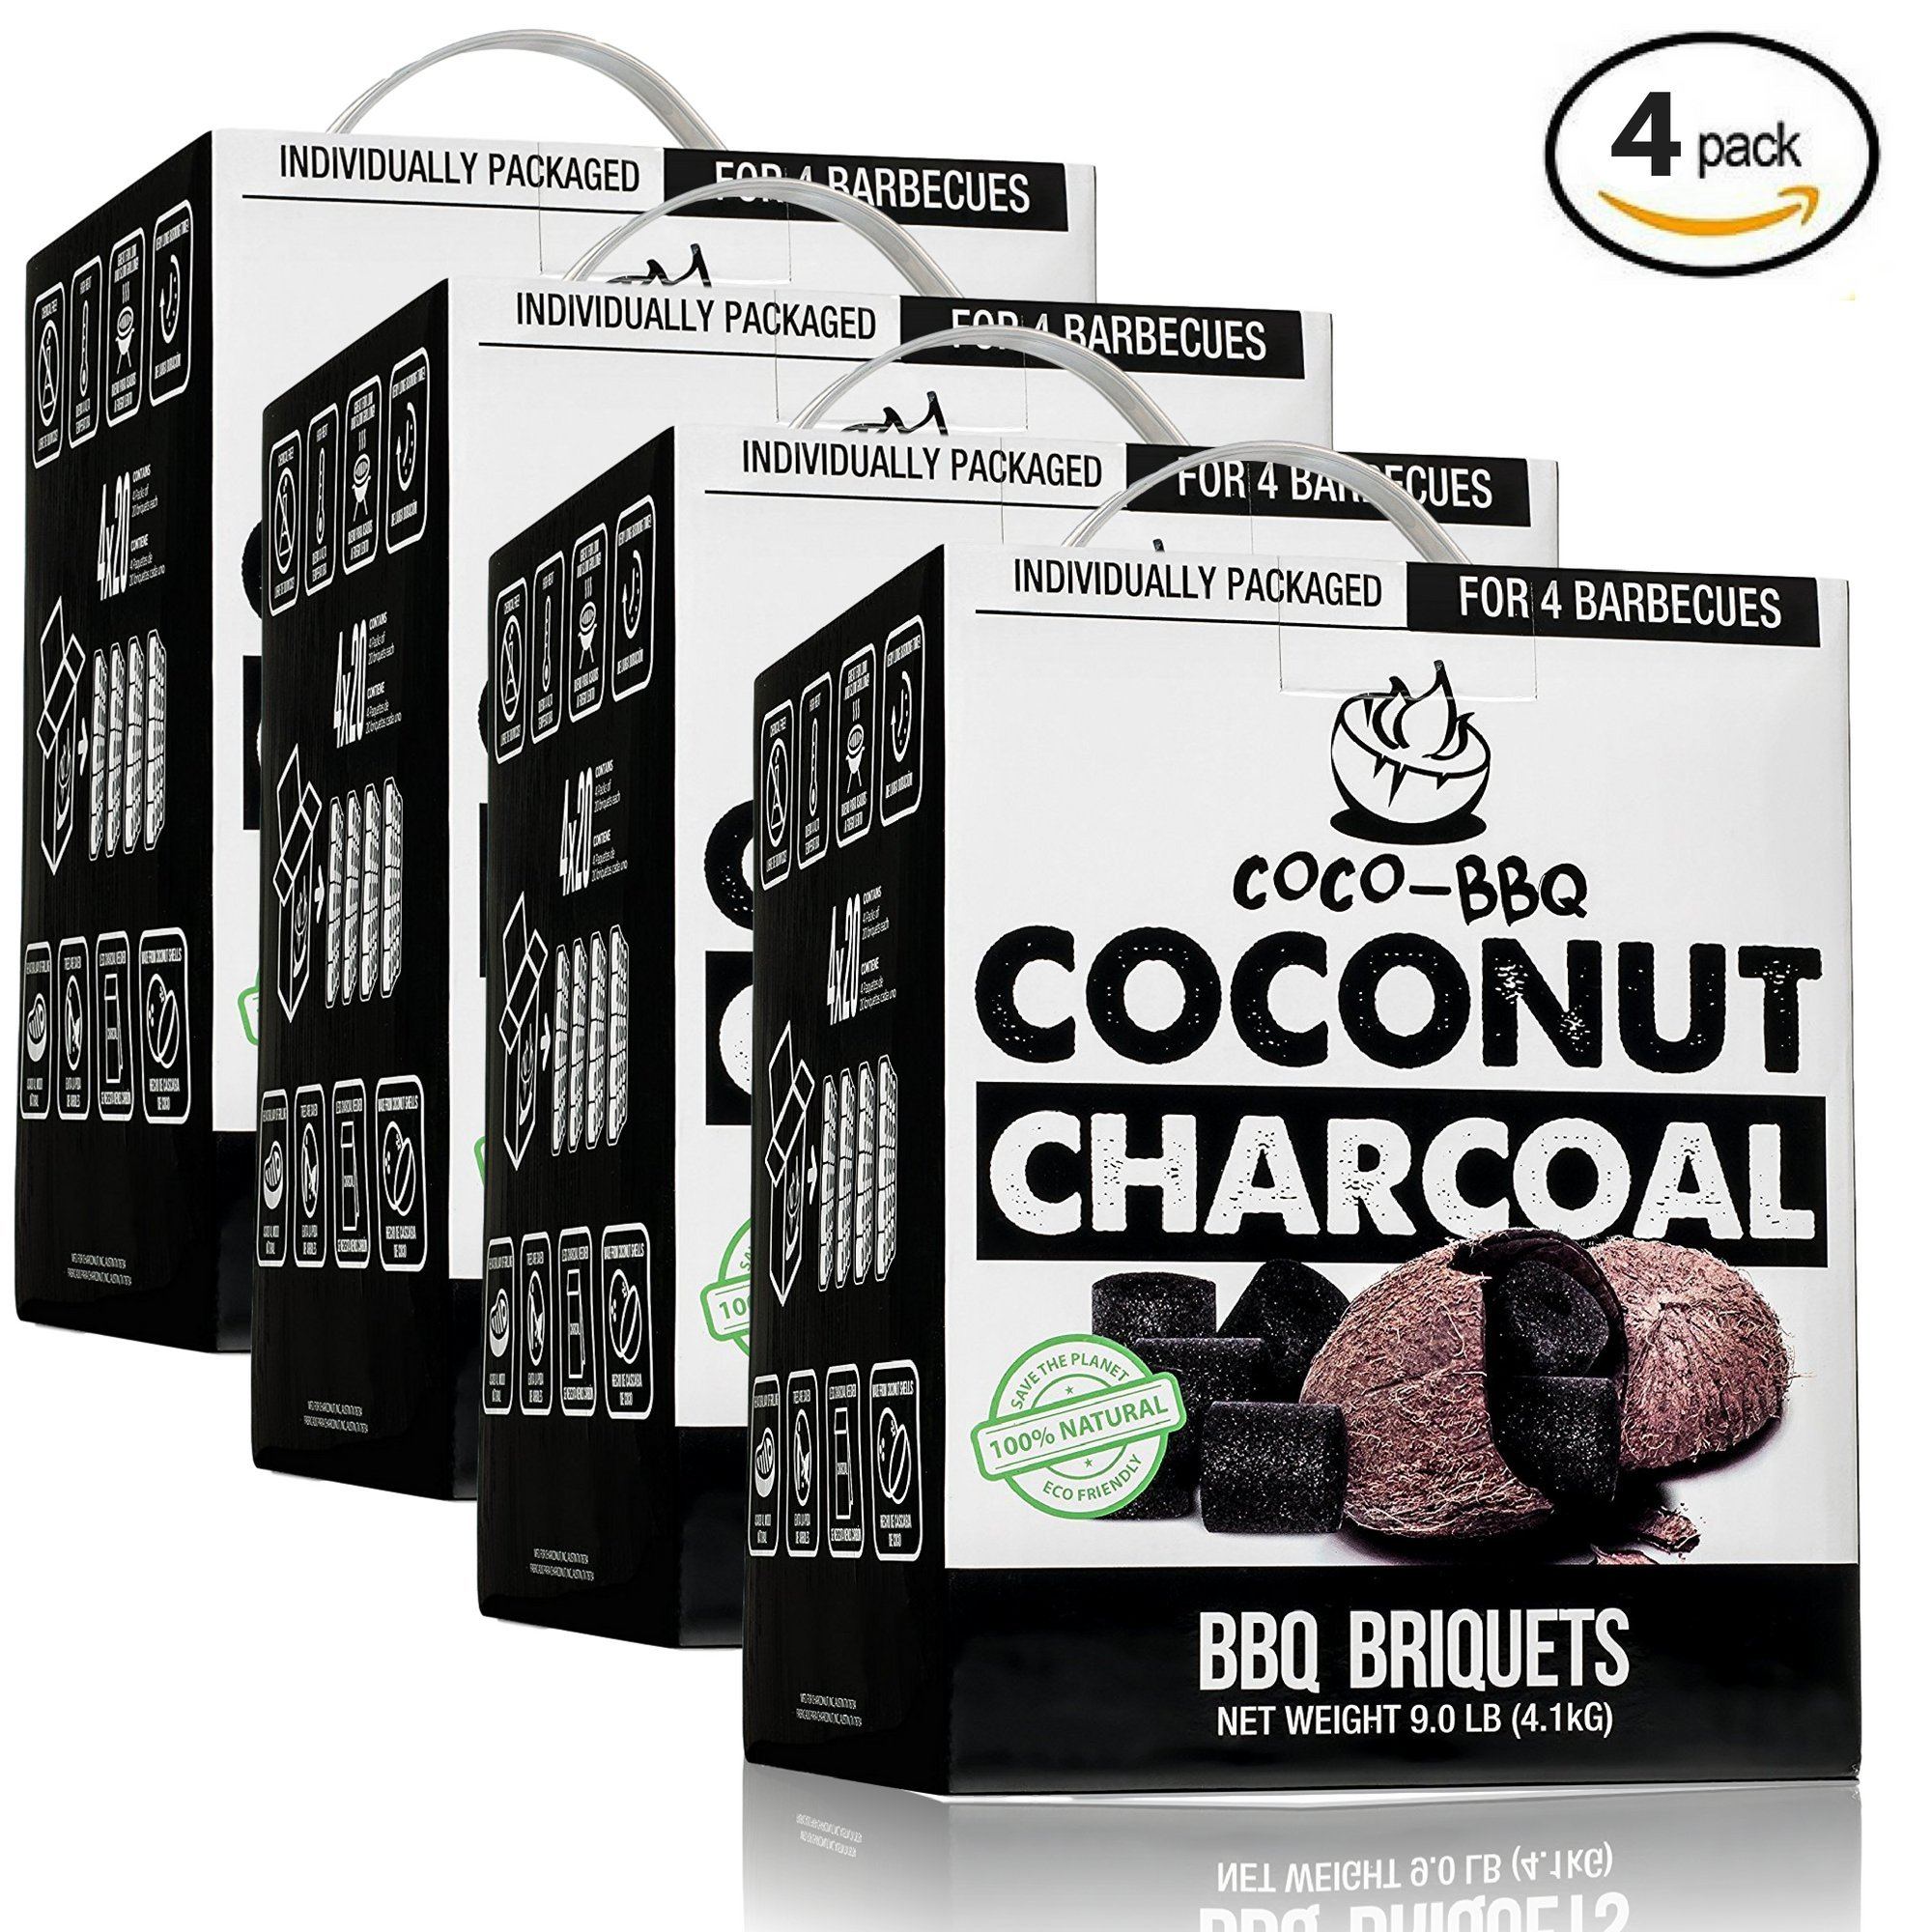 COCO-BBQ Eco-Friendly Barbecue (SET OF 4) Charcoal Made from Coconut Shells for Low and Slow Grilling